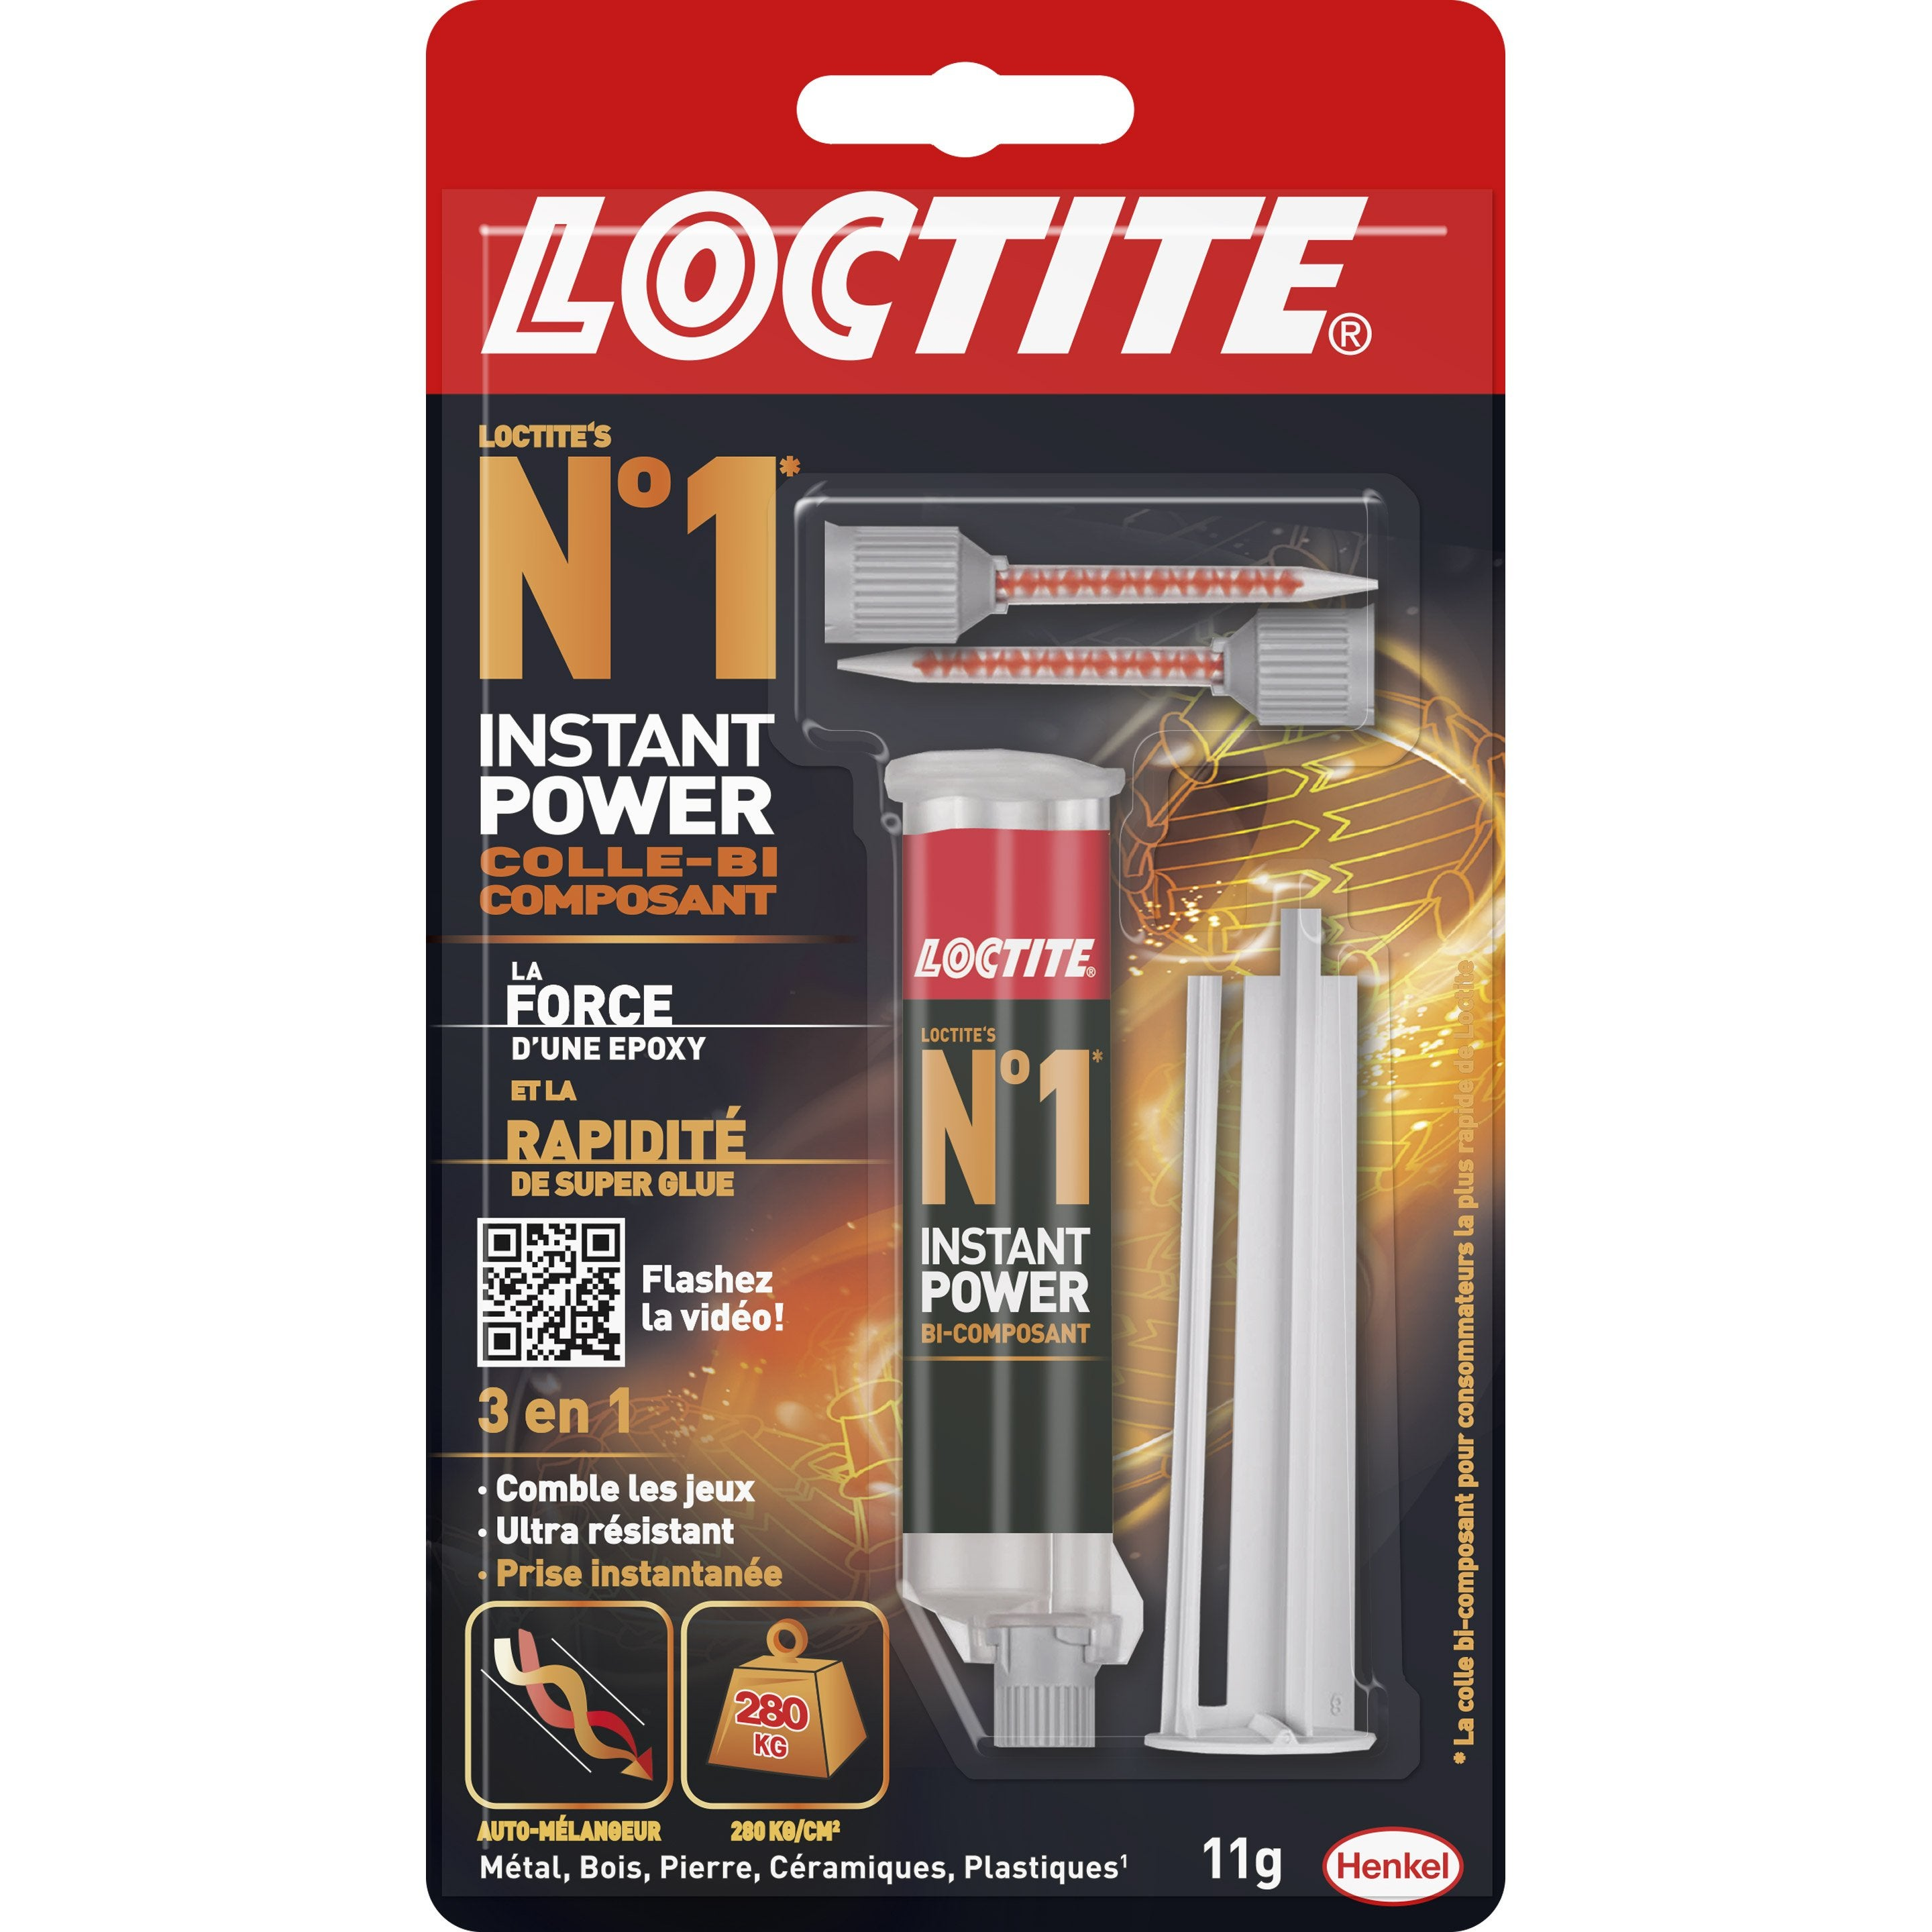 Colle Thermofusible Leroy Merlin colle seringue époxy loctite n°1 loctite, 11 g